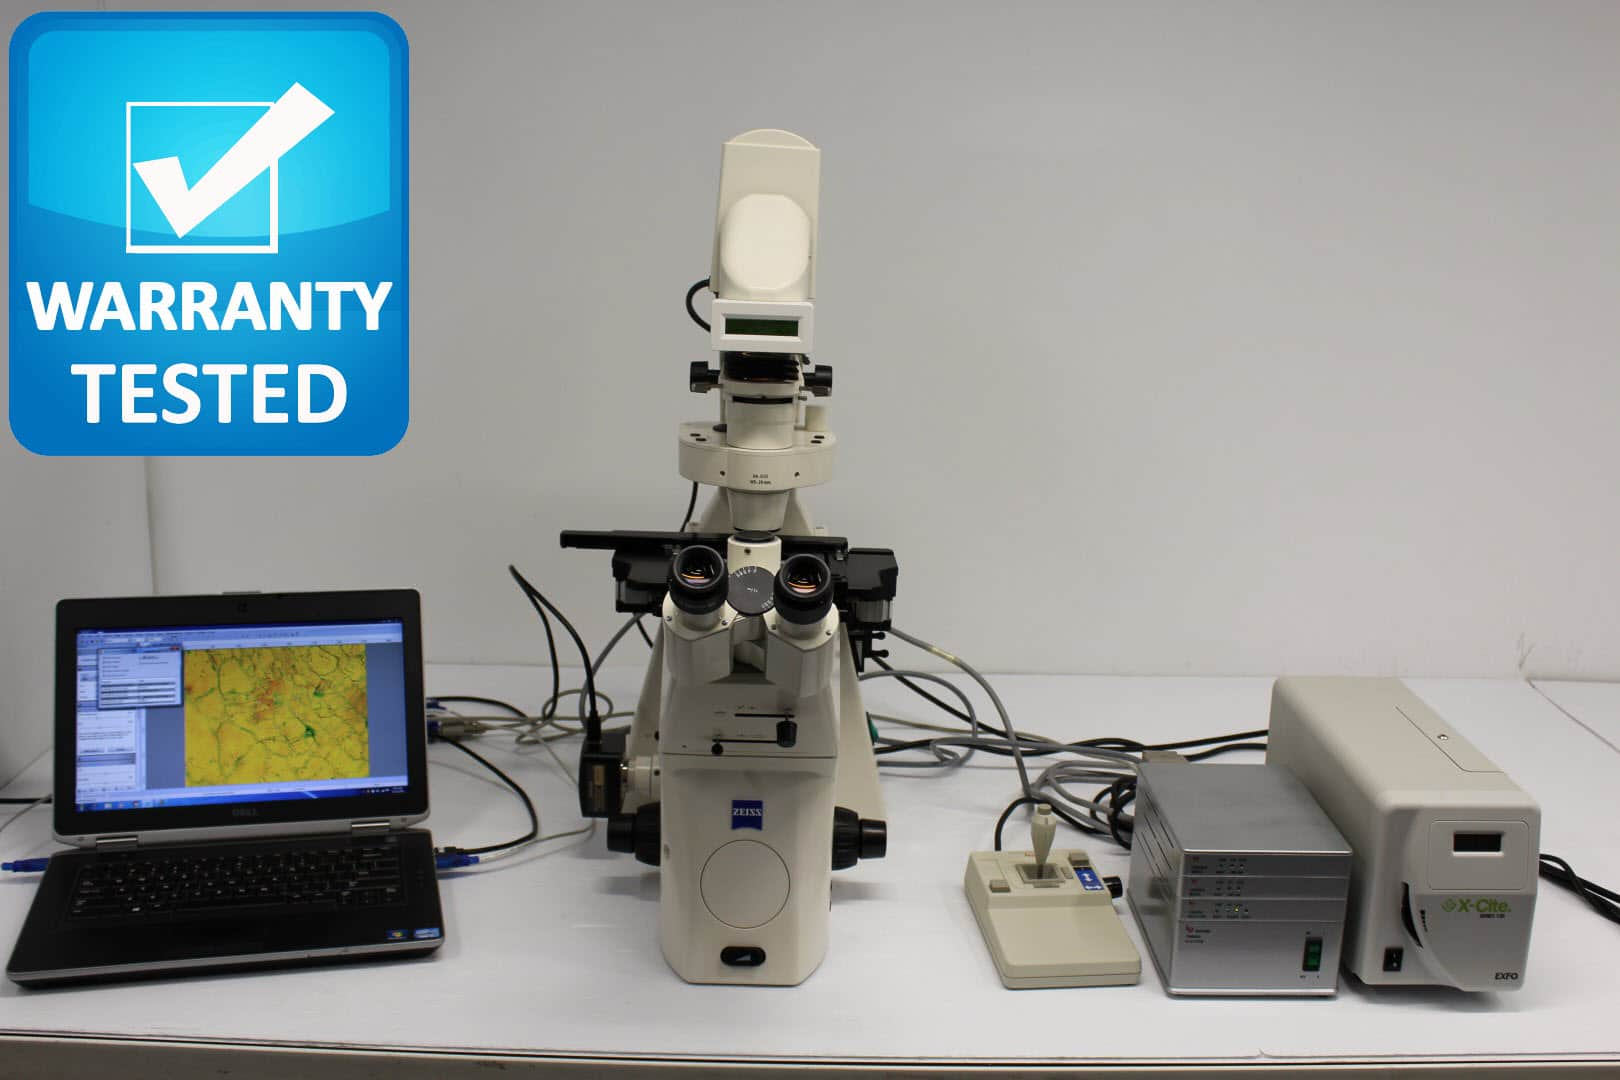 Zeiss Axiovert 200M Inverted Motorized Fluorescence Phase Contrast Microscope Pred Observer Z1